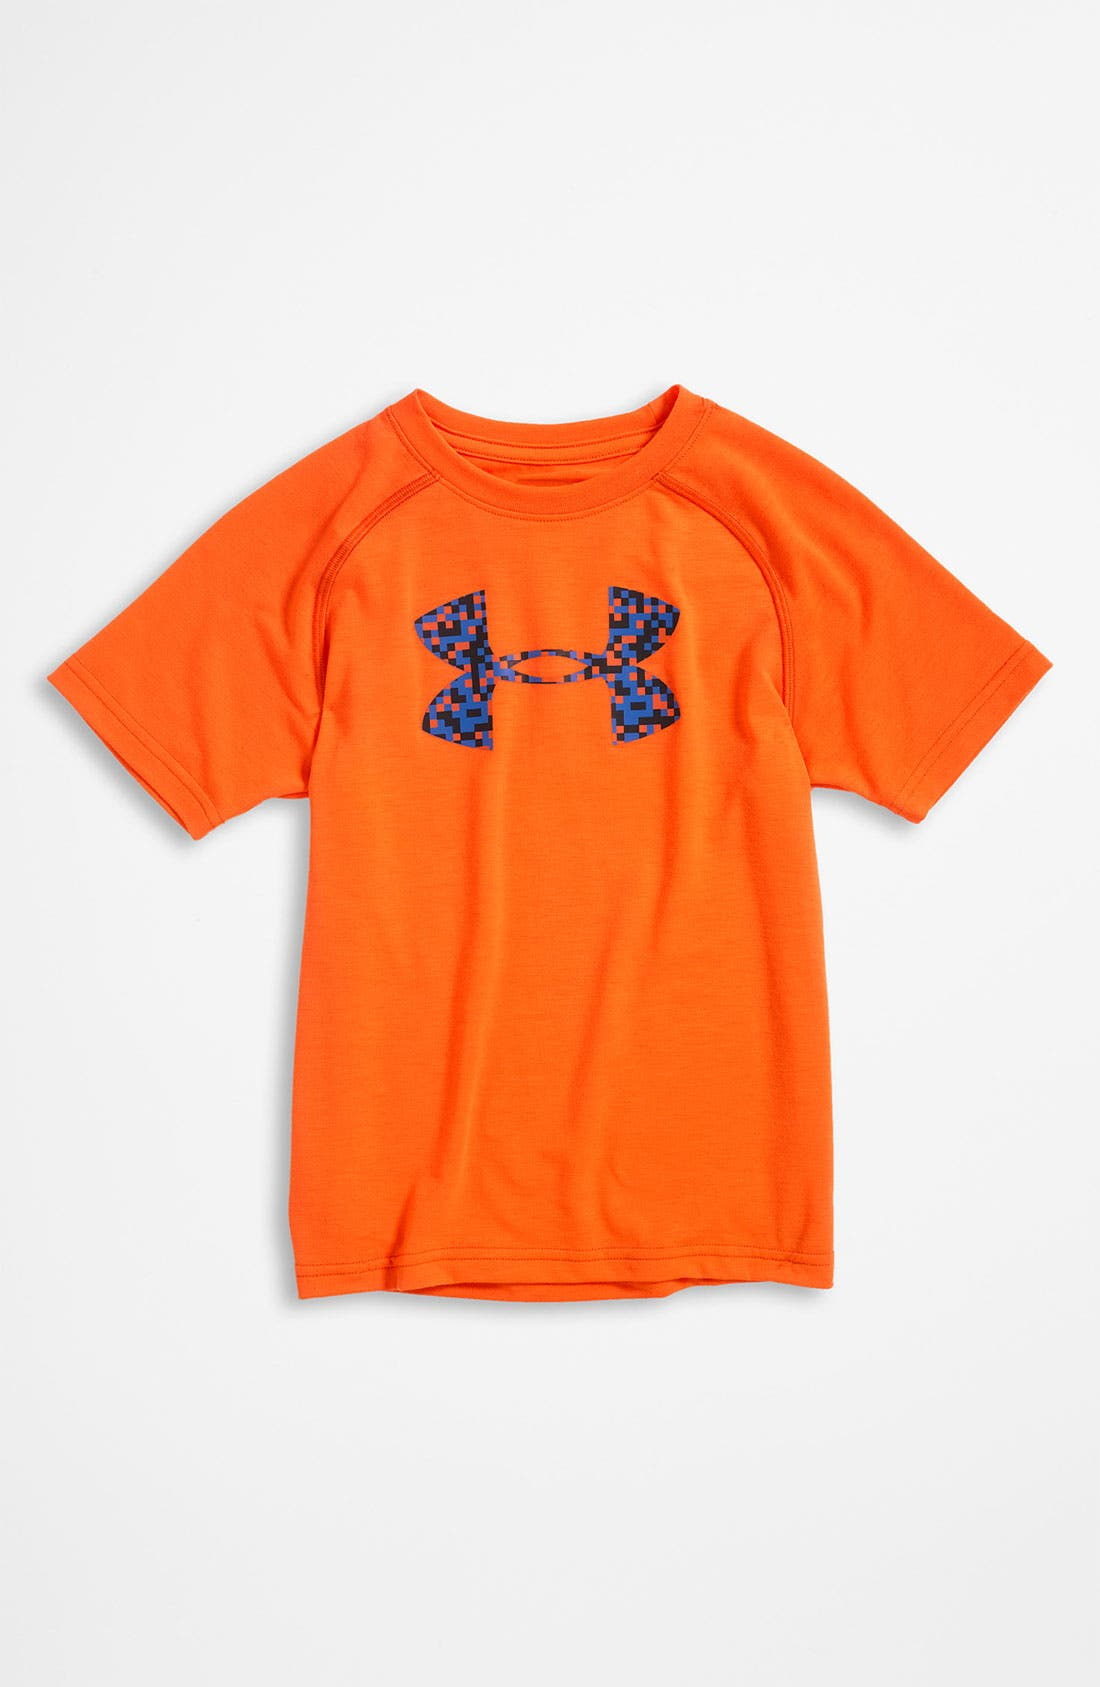 Alternate Image 1 Selected - Under Armour 'Big Logo Tech' T-Shirt (Little Boys)